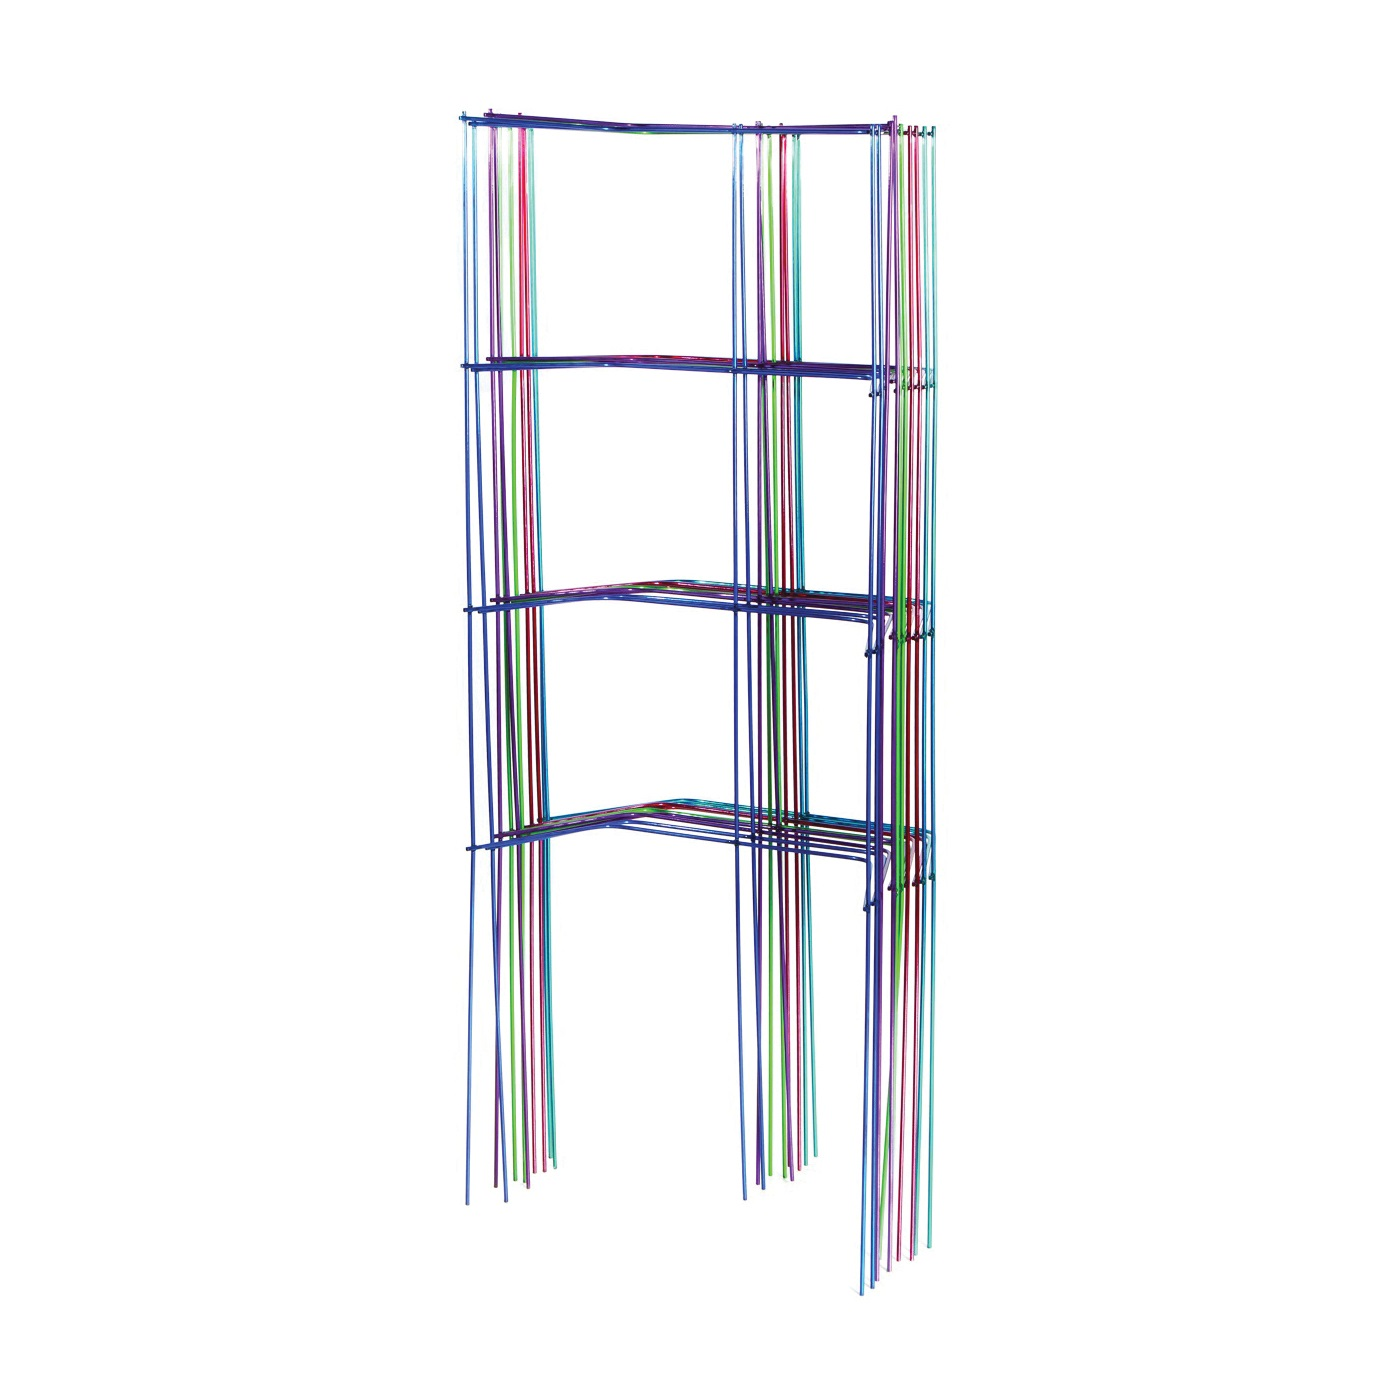 Picture of Glamos Wire 21170 Garden Cage Support, 46 in L, Amethyst Purple/Aquamarine/Emerald Green/Ruby Red/Sapphire Blue